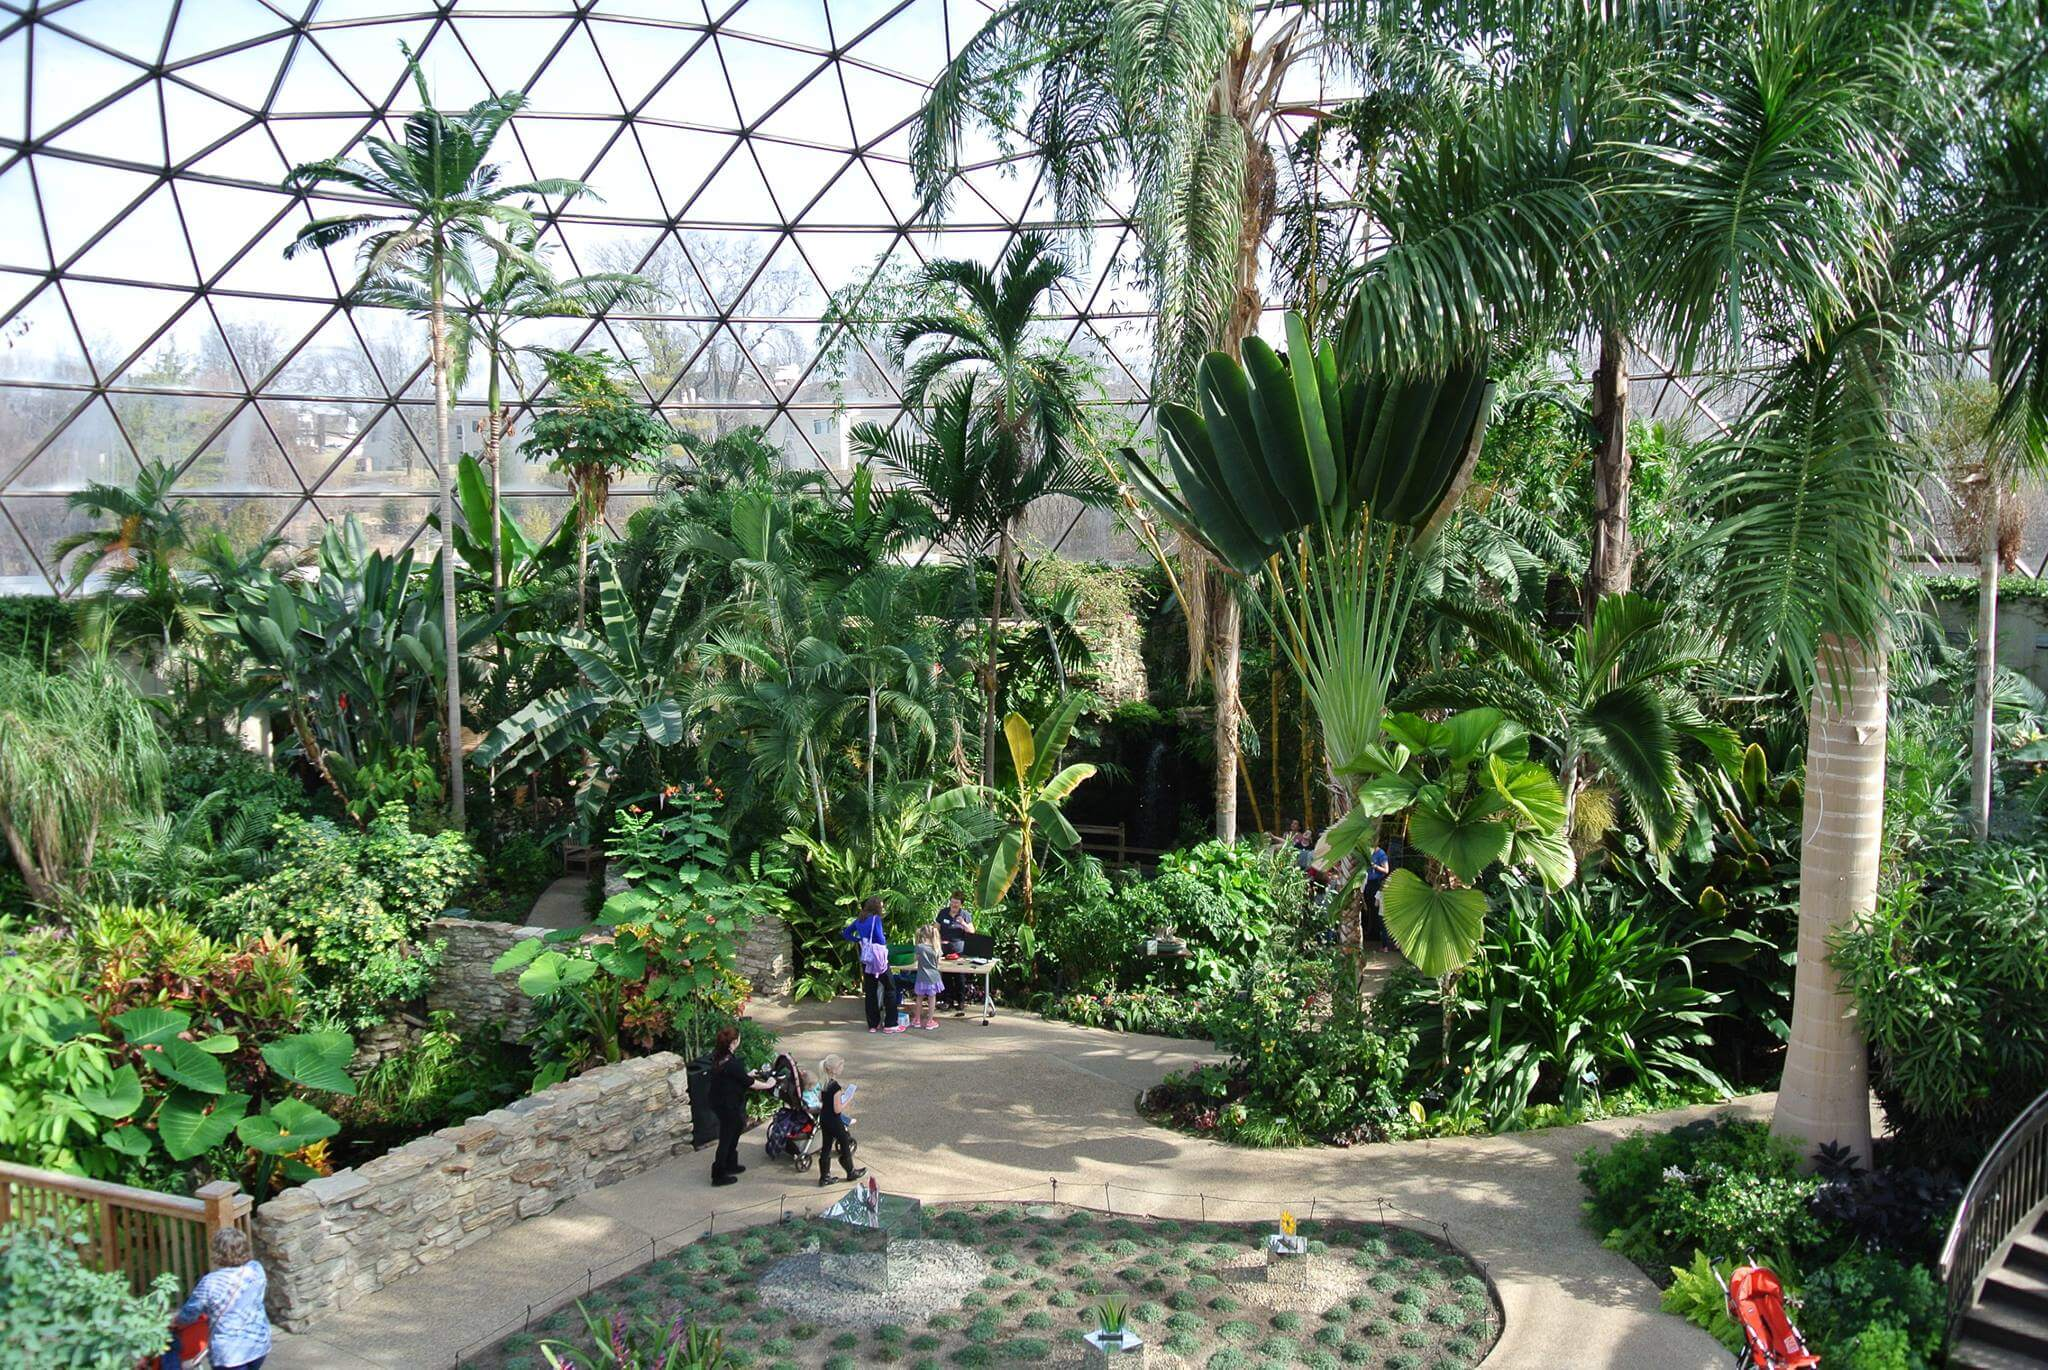 31897bcb68d1 Conservatory Sip and Stroll - Greater Des Moines Botanical Garden